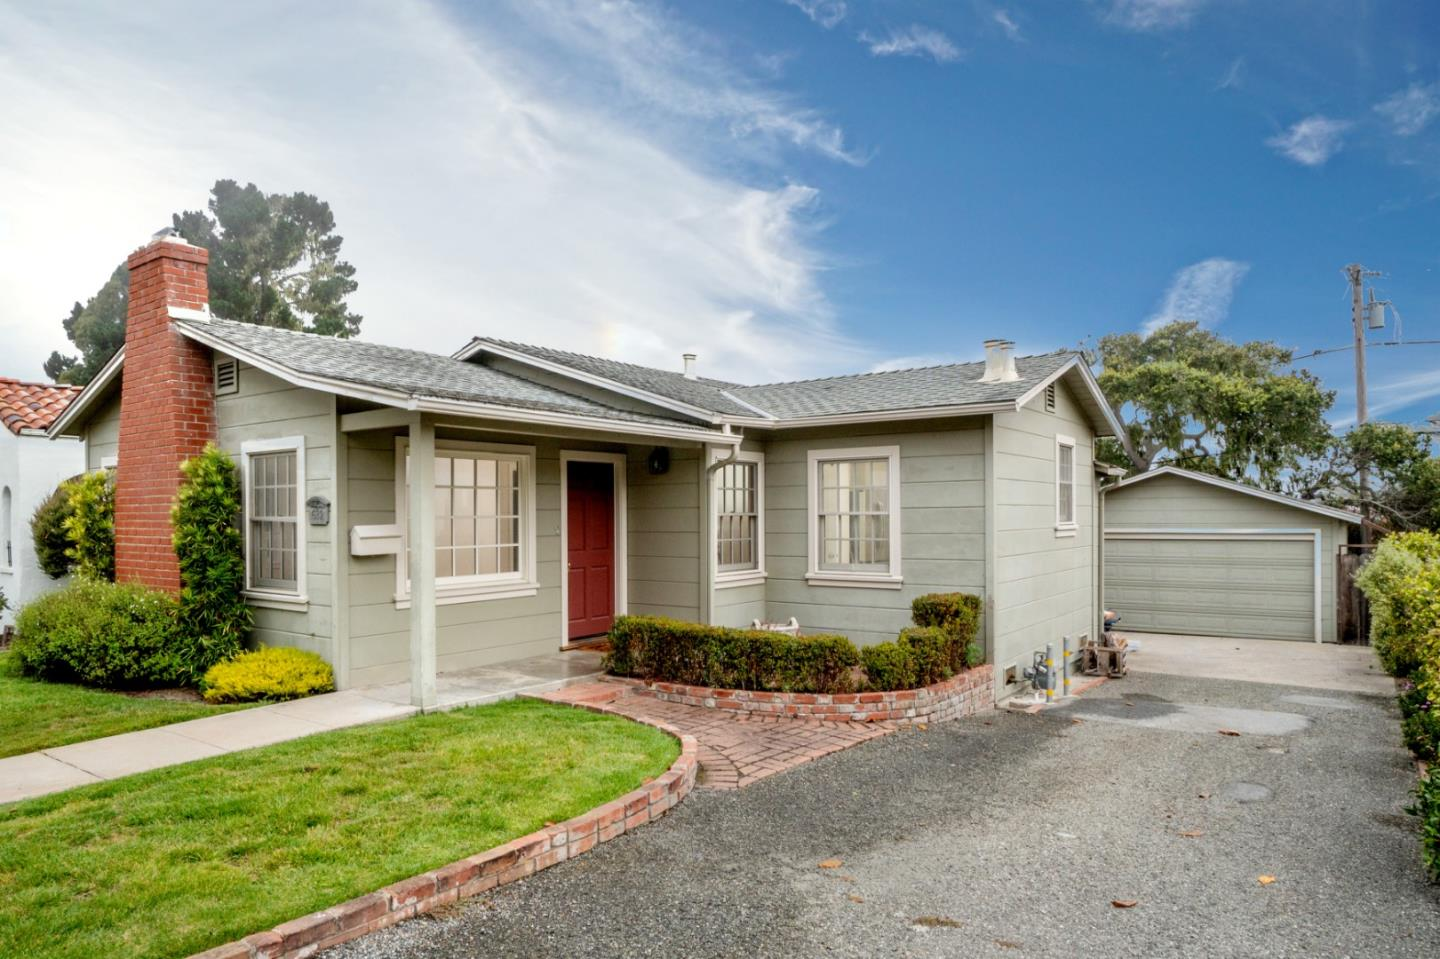 Property for sale at 632 Spazier AVE, Pacific Grove,  CA 93950